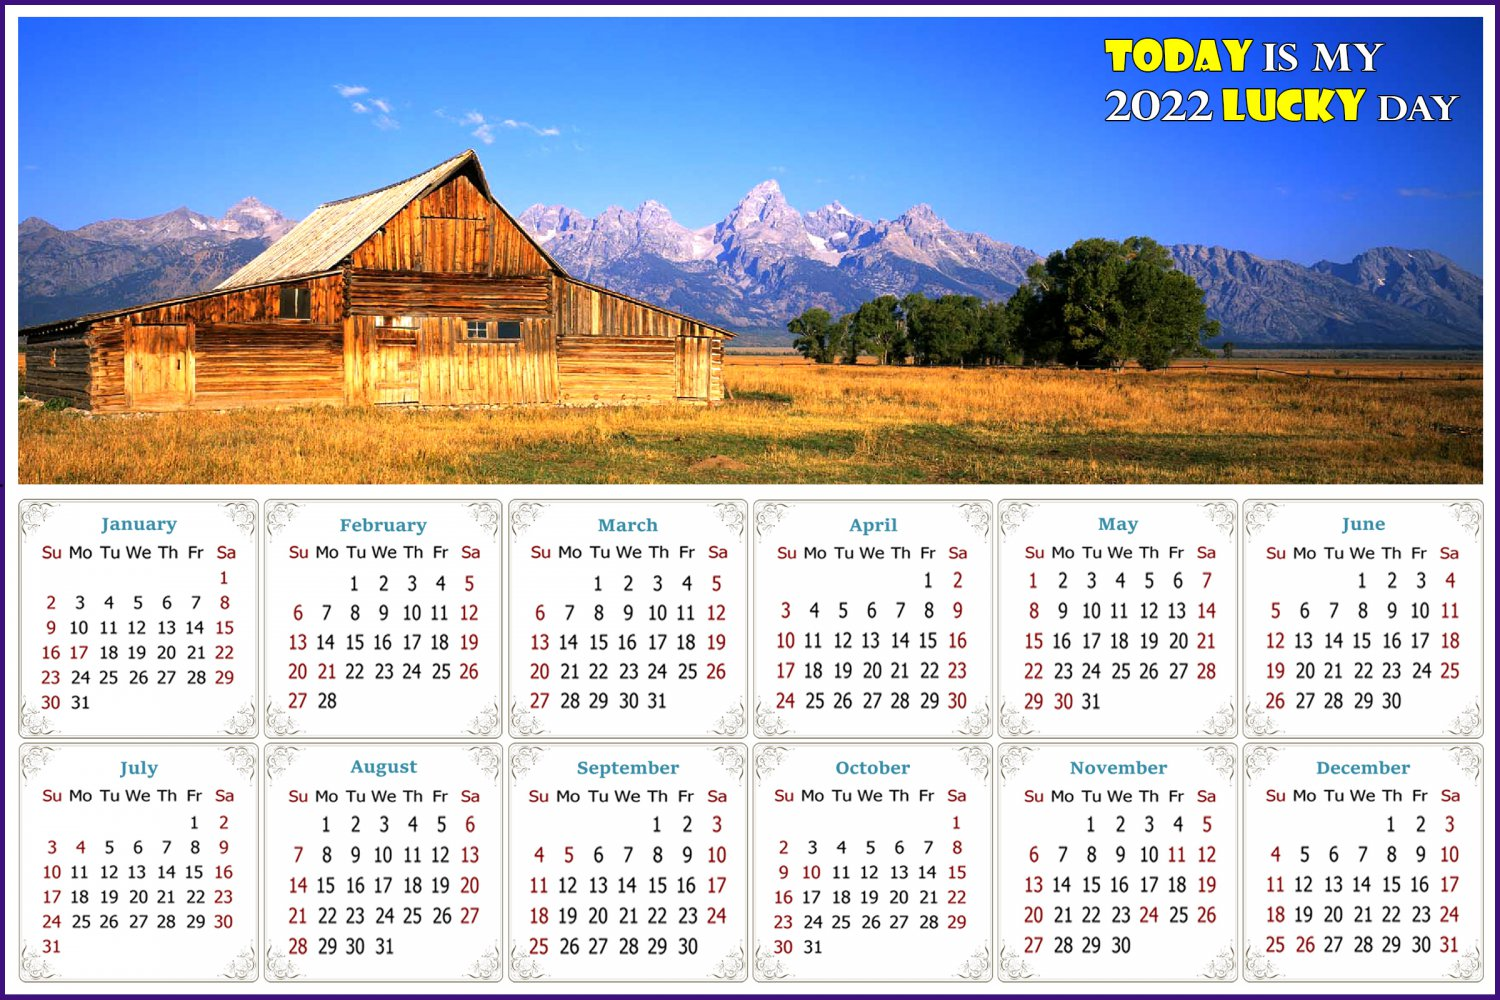 2022 Magnetic Calendar - Today is My Lucky Day - (Grand Tetons and Old barn)